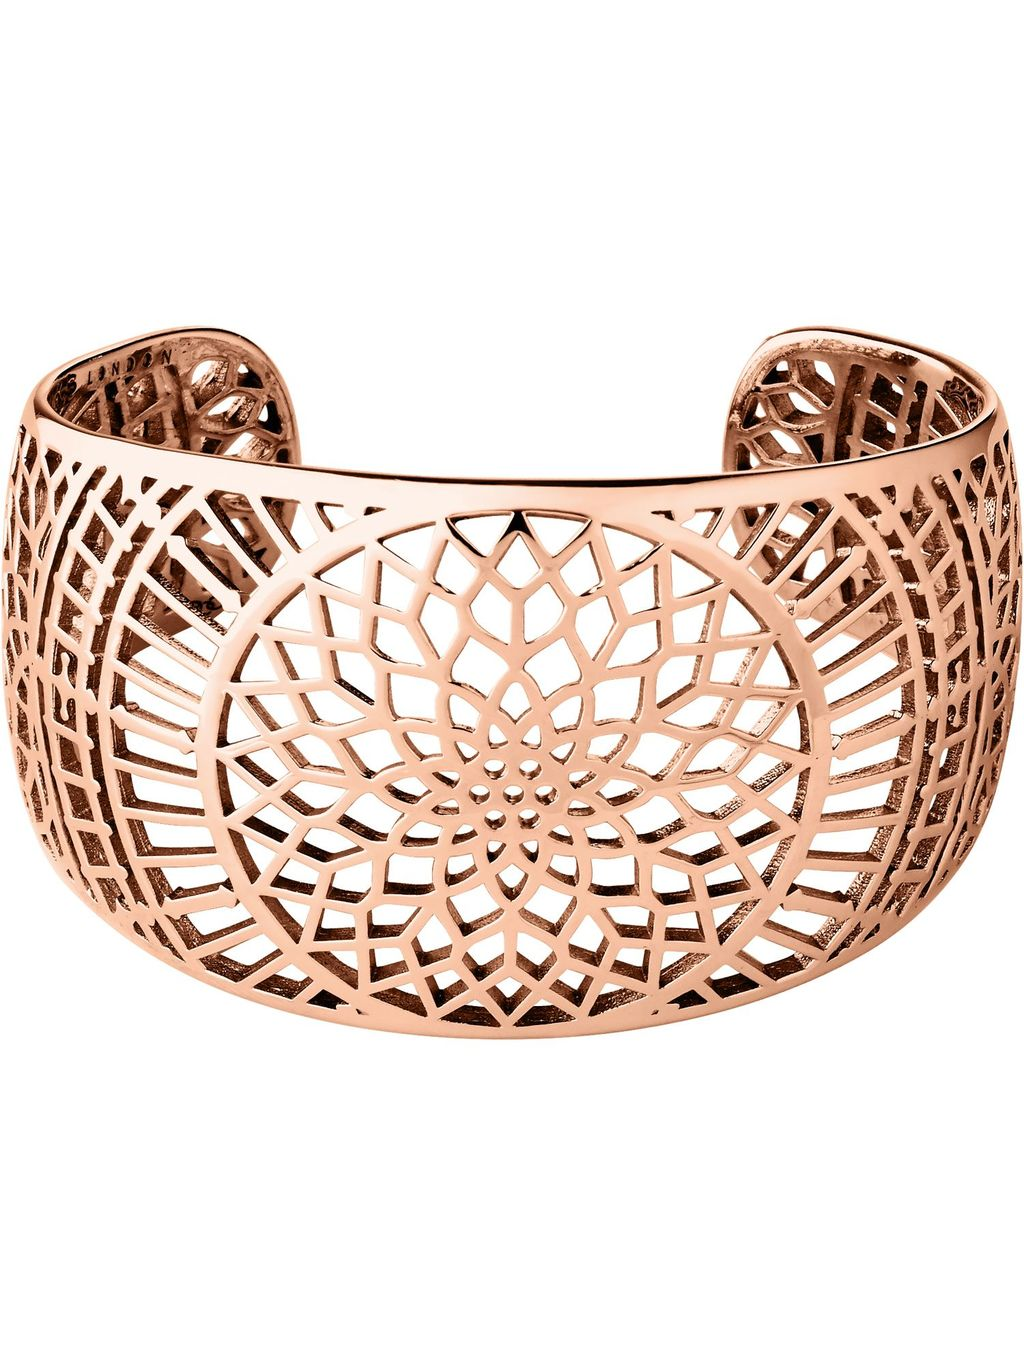 Timeless Rose Gold Cuff, N/A - predominant colour: gold; occasions: evening, occasion, creative work; style: cuff; size: large/oversized; material: chain/metal; finish: metallic; season: a/w 2015; wardrobe: highlight